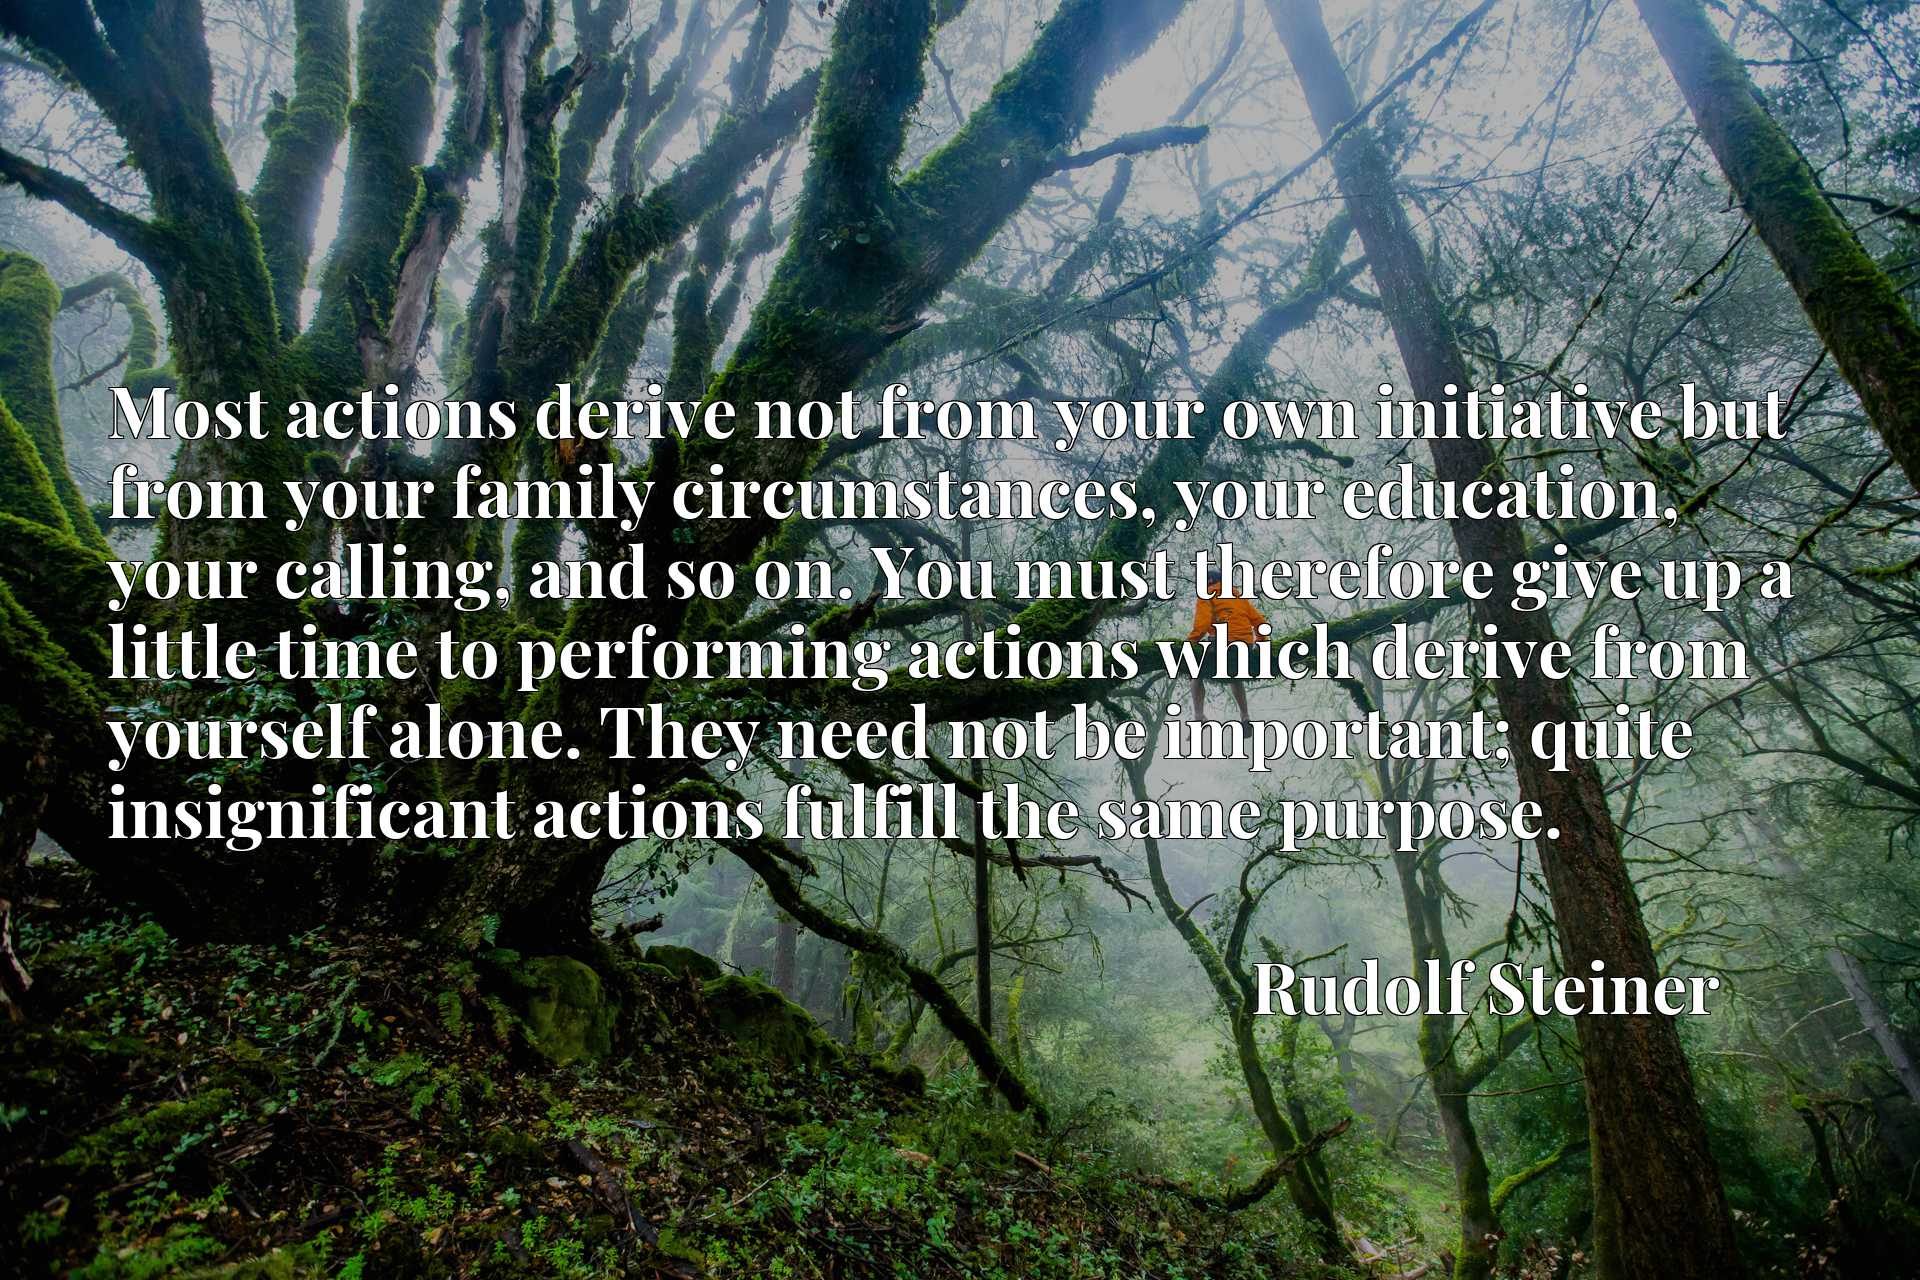 Most actions derive not from your own initiative but from your family circumstances, your education, your calling, and so on. You must therefore give up a little time to performing actions which derive from yourself alone. They need not be important; quite insignificant actions fulfill the same purpose.